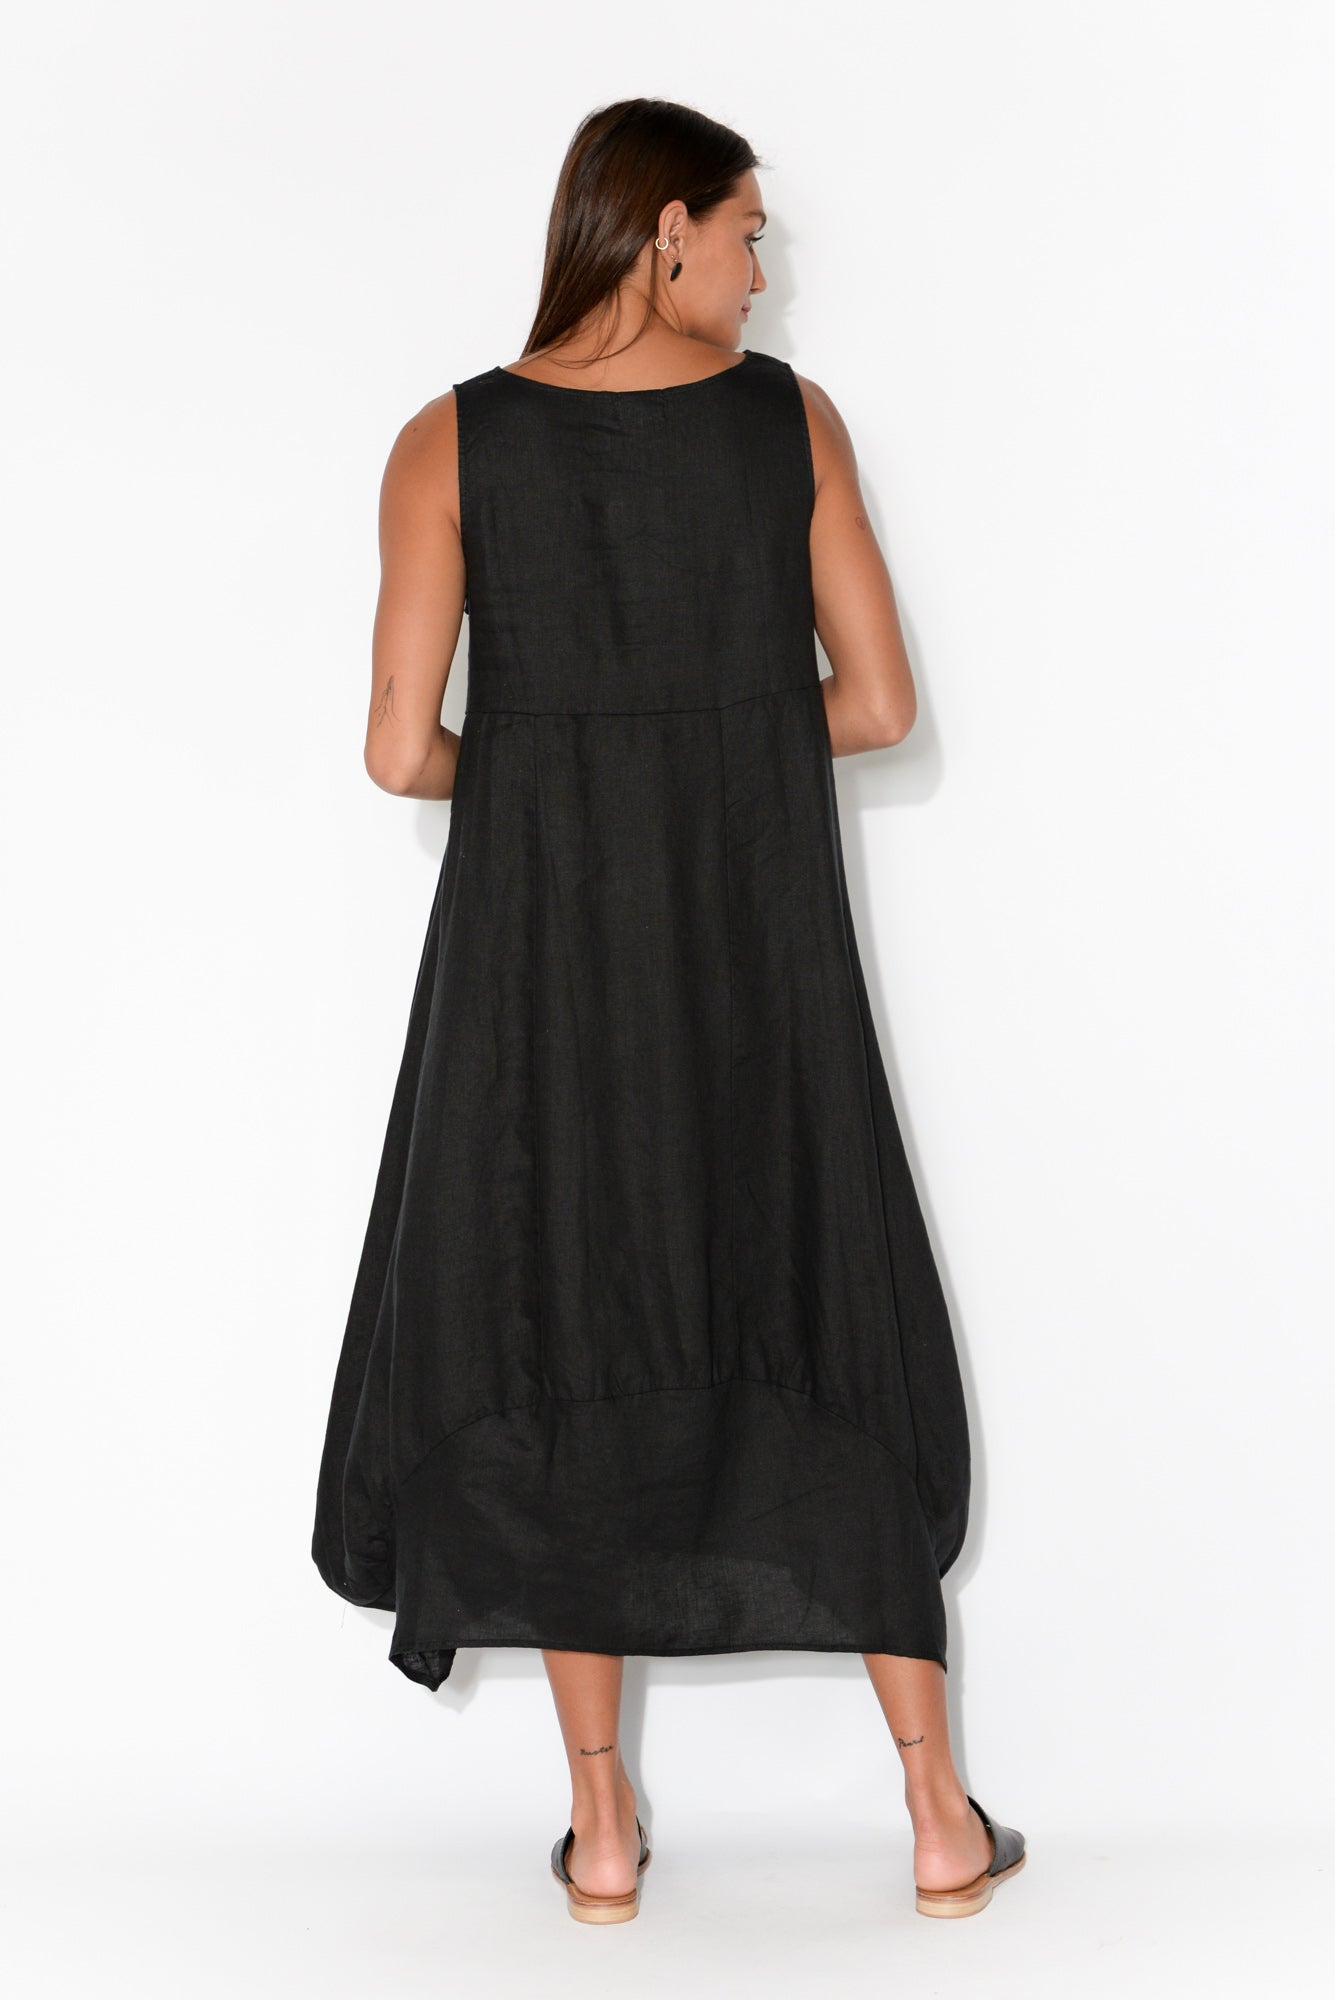 Kalinda Black Linen Pocket Pinafore